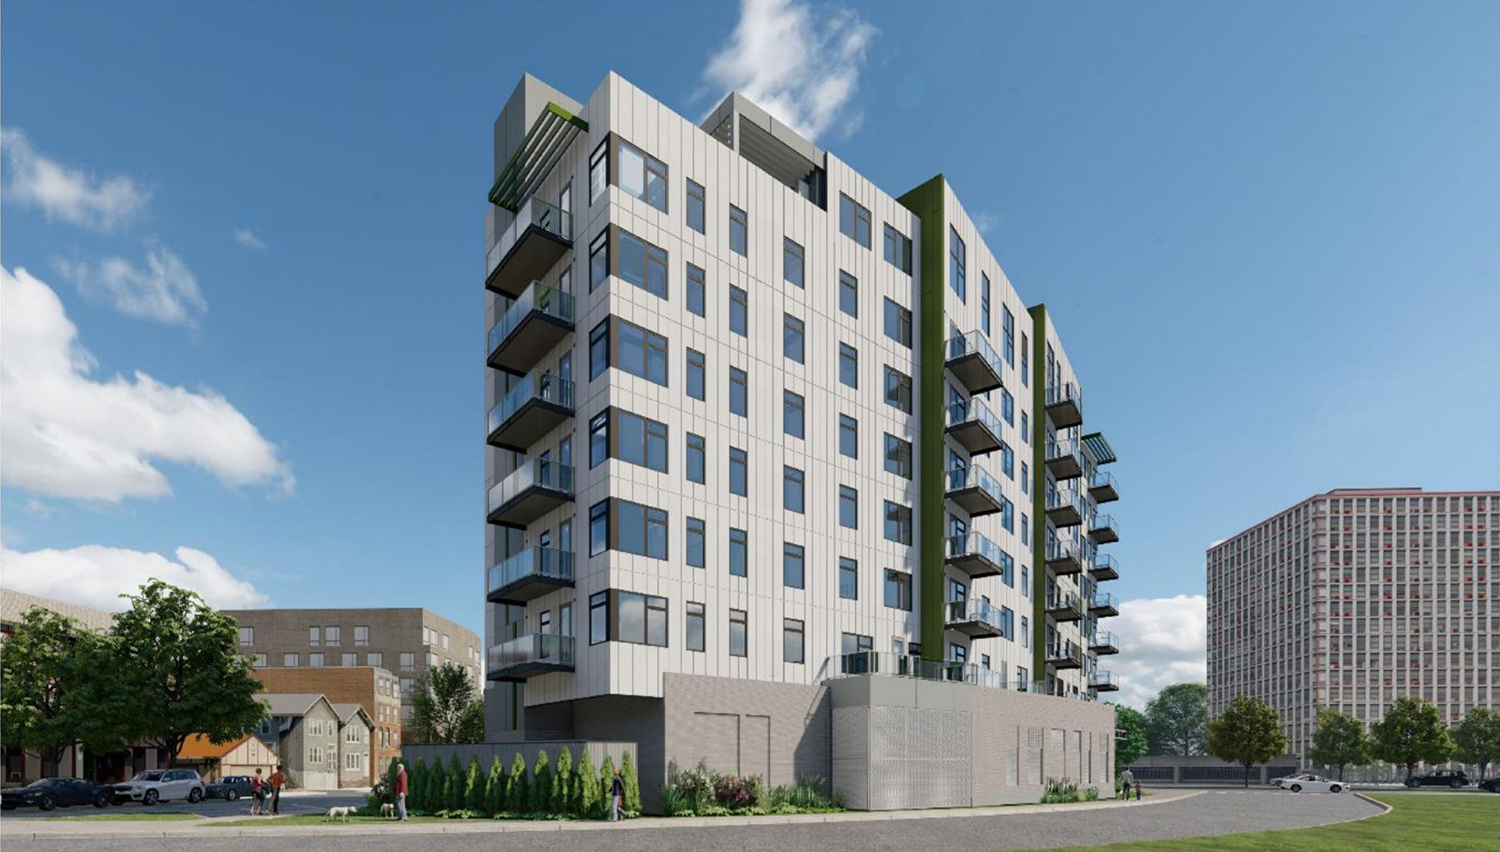 View of 1140 W Erie Street Looking West. Rendering by FitzGerald Associates